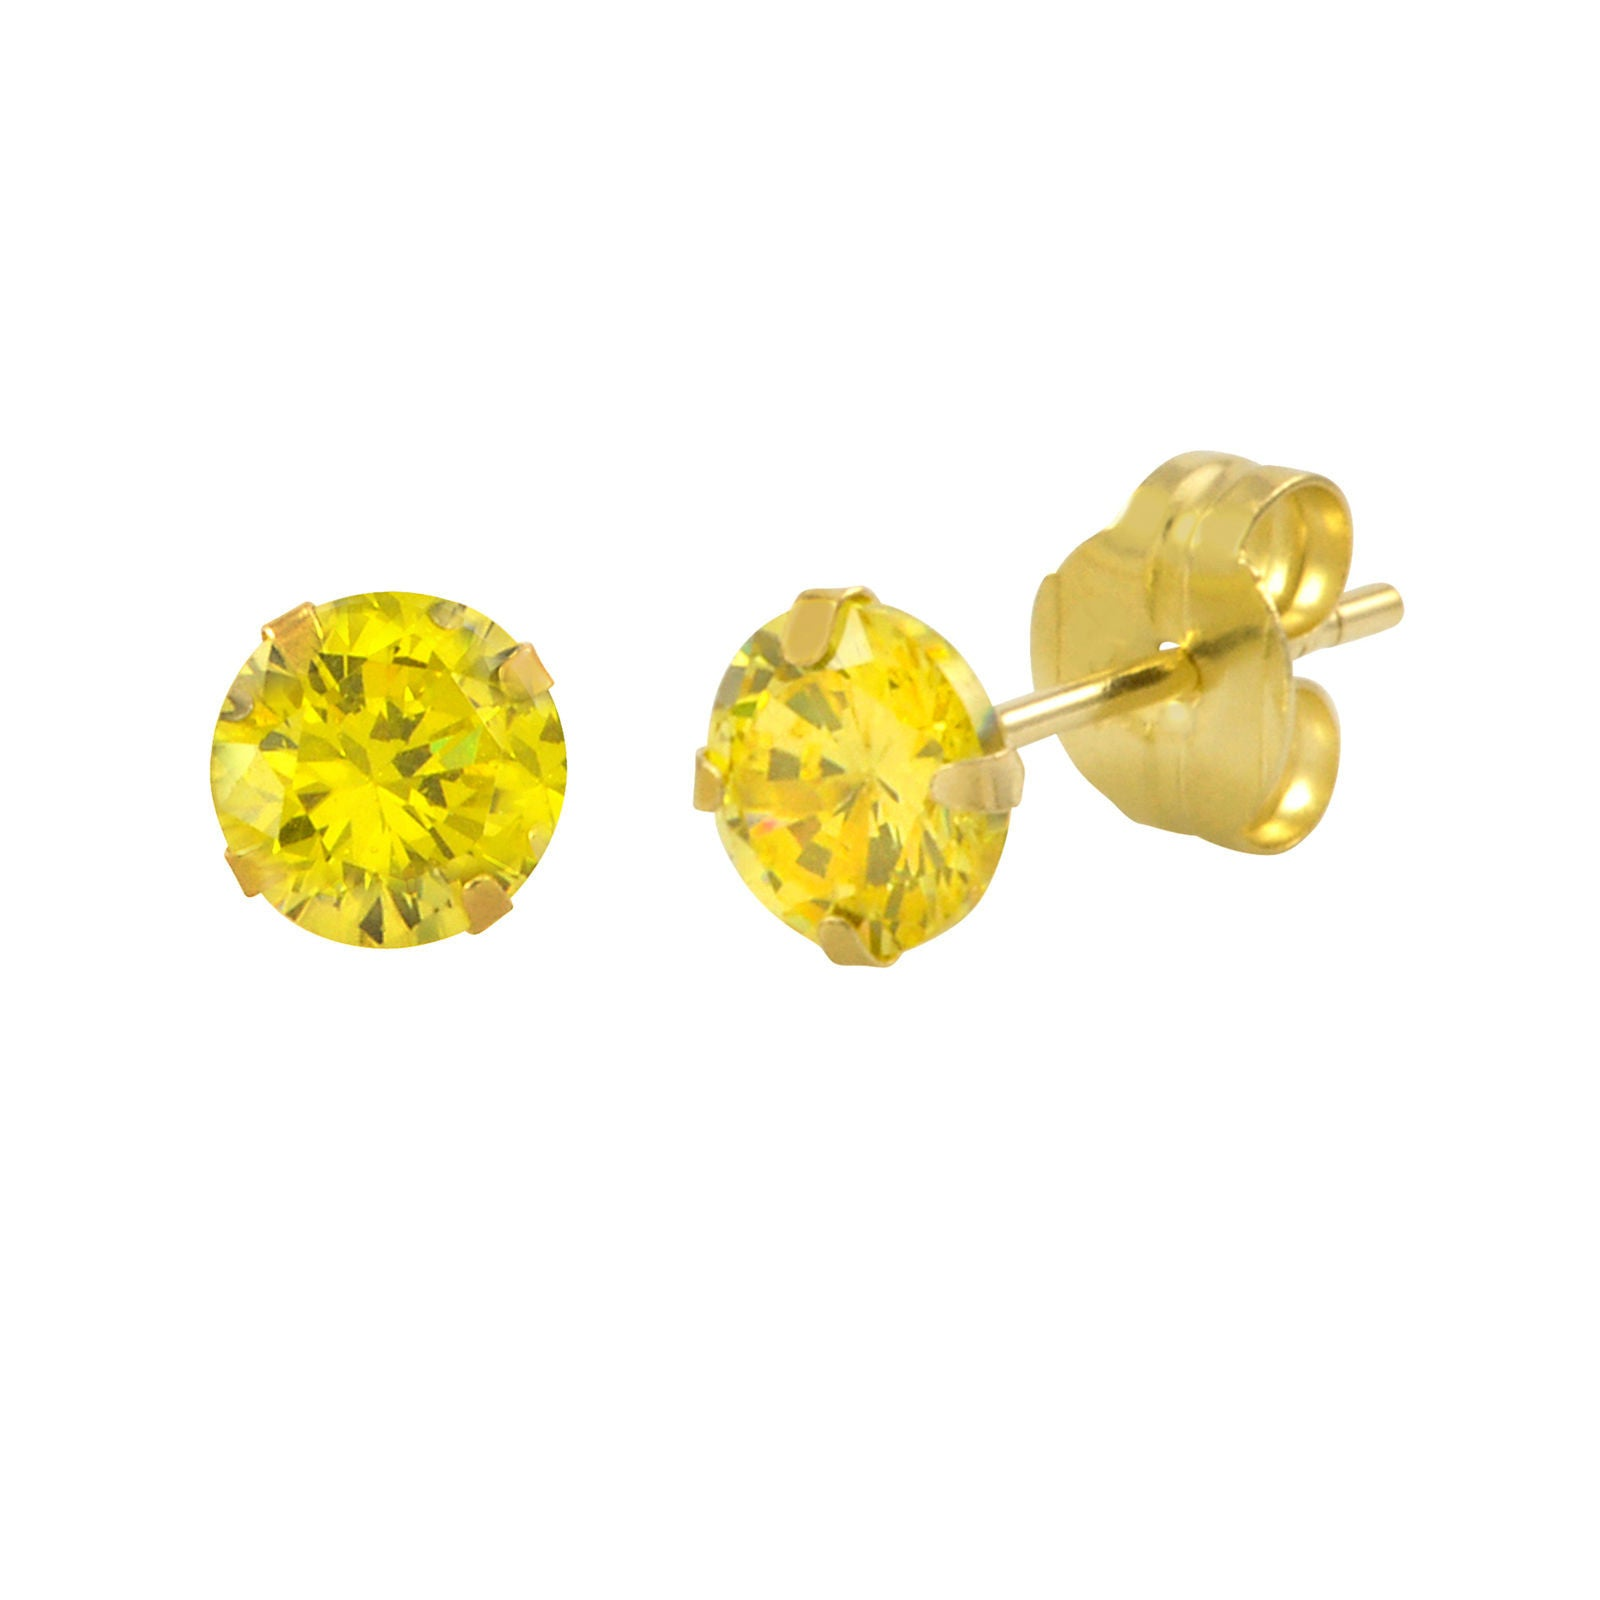 yellow cube earring giftsden square gucci citrine stud earrings g